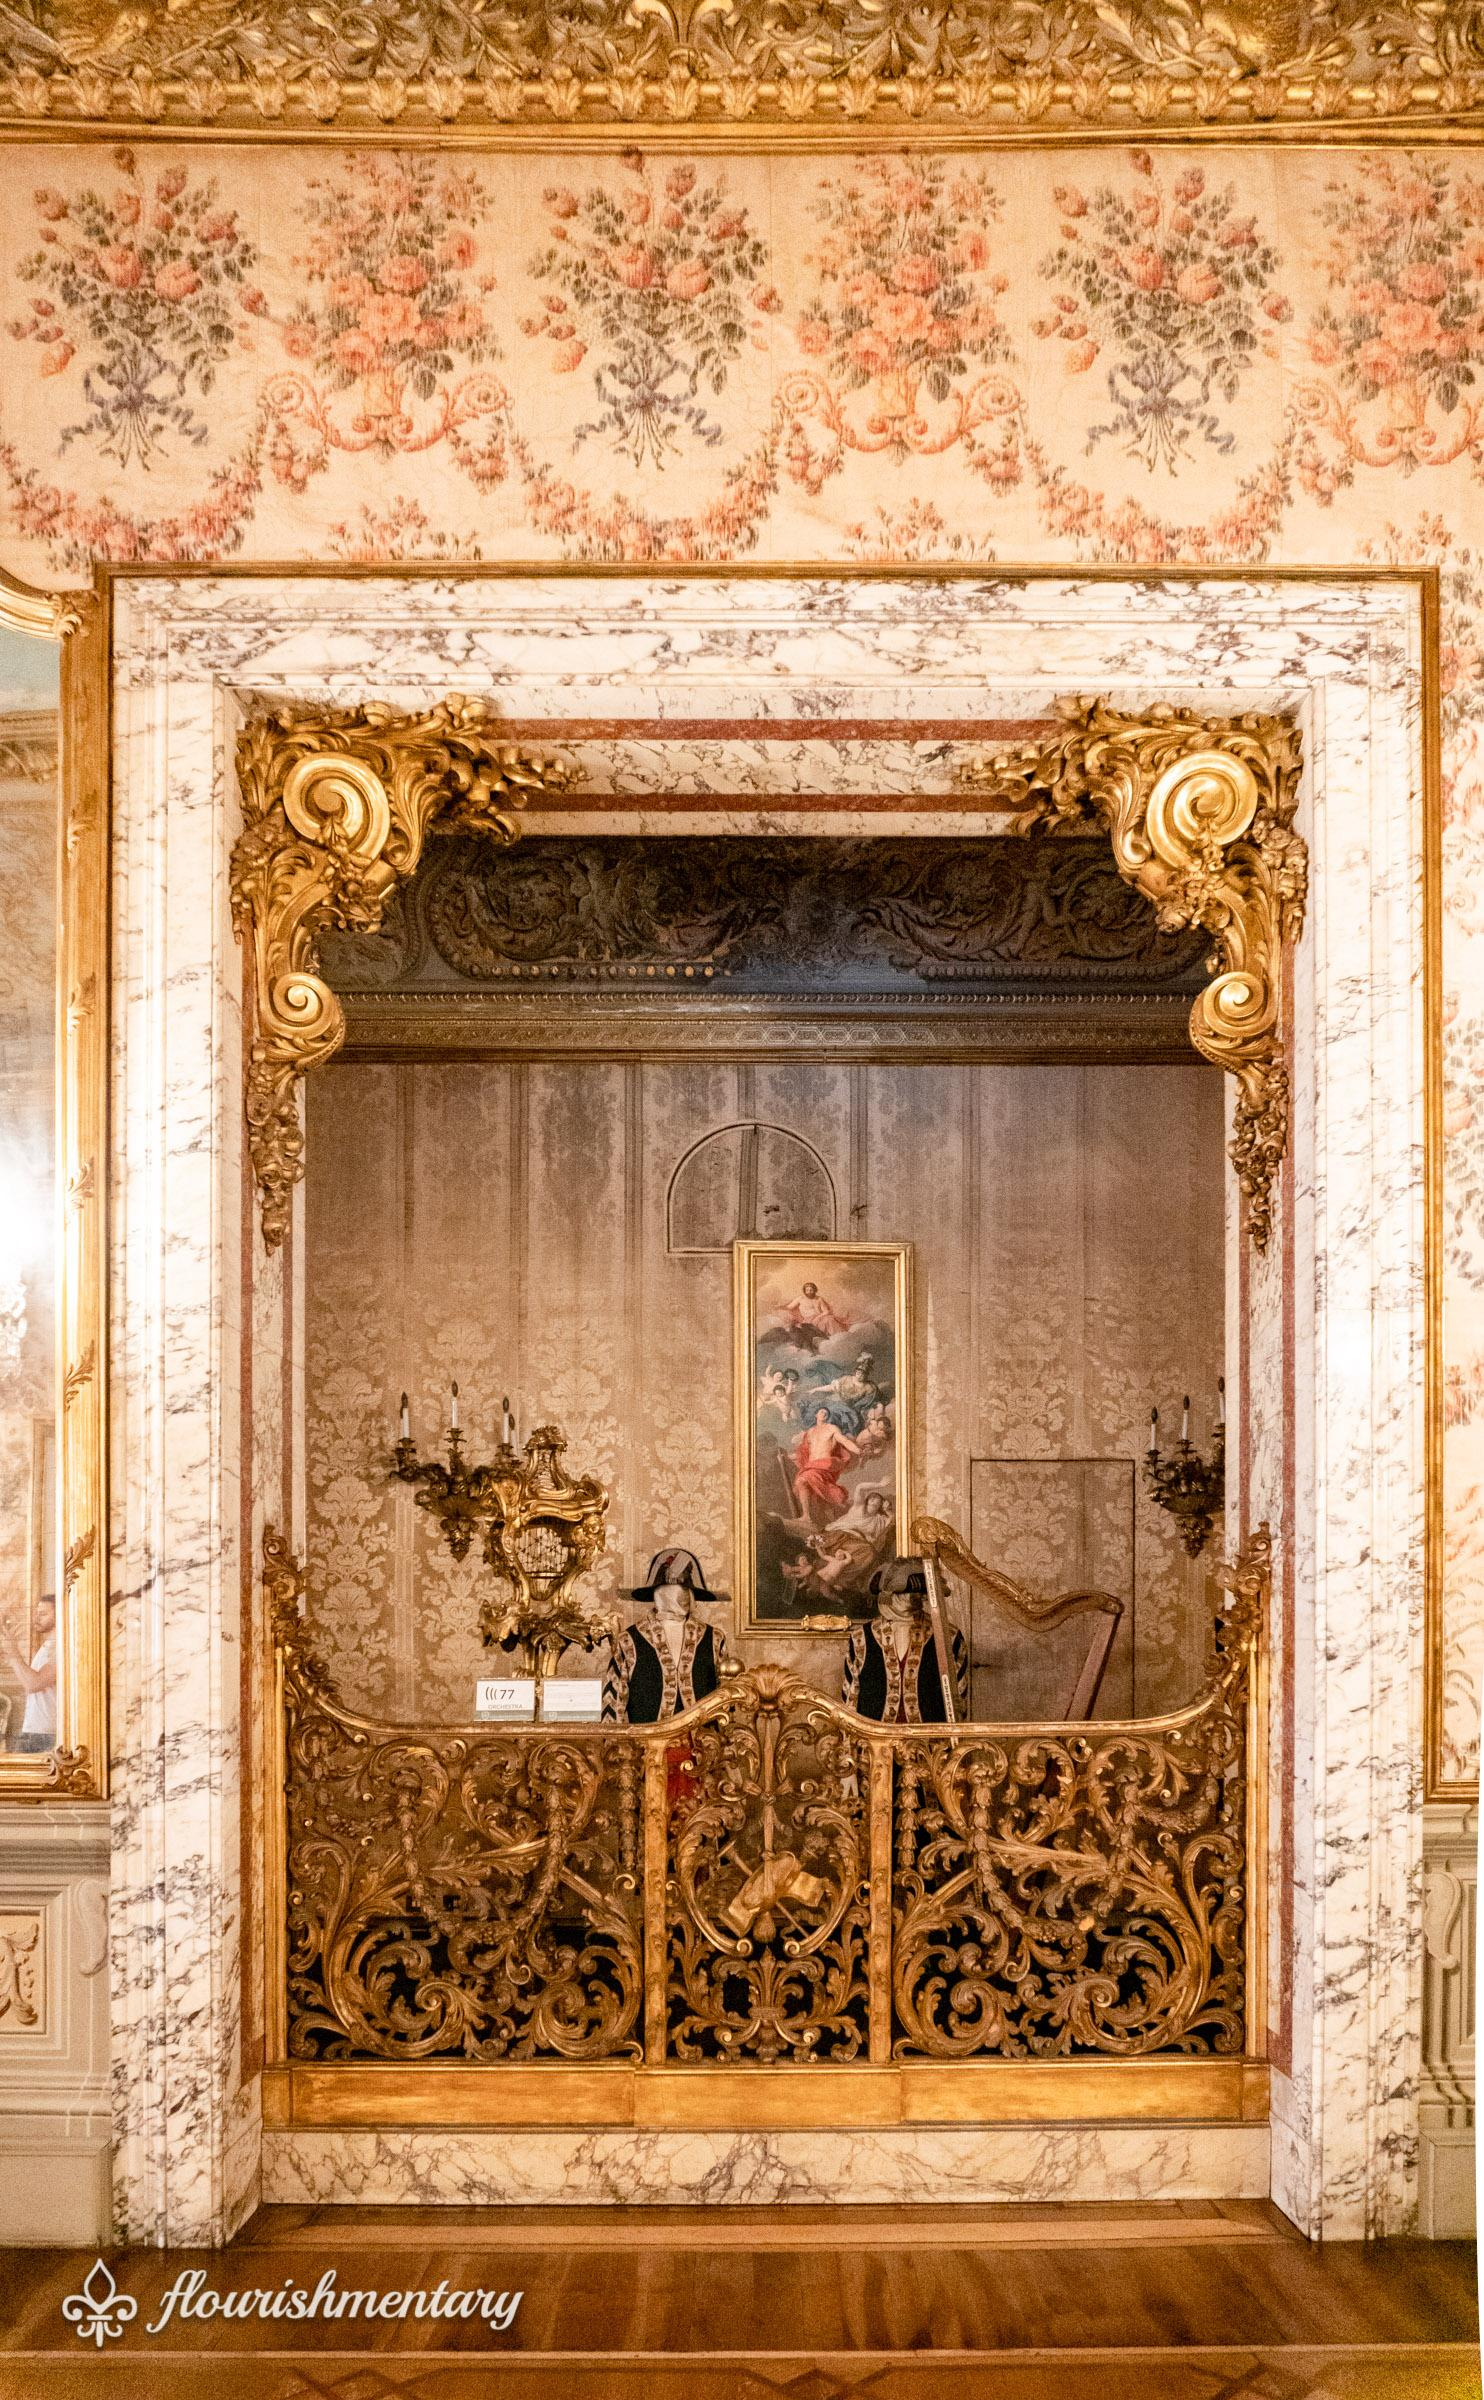 The Orchestra Pit in the galleria Doria Pamphilj Ballroom